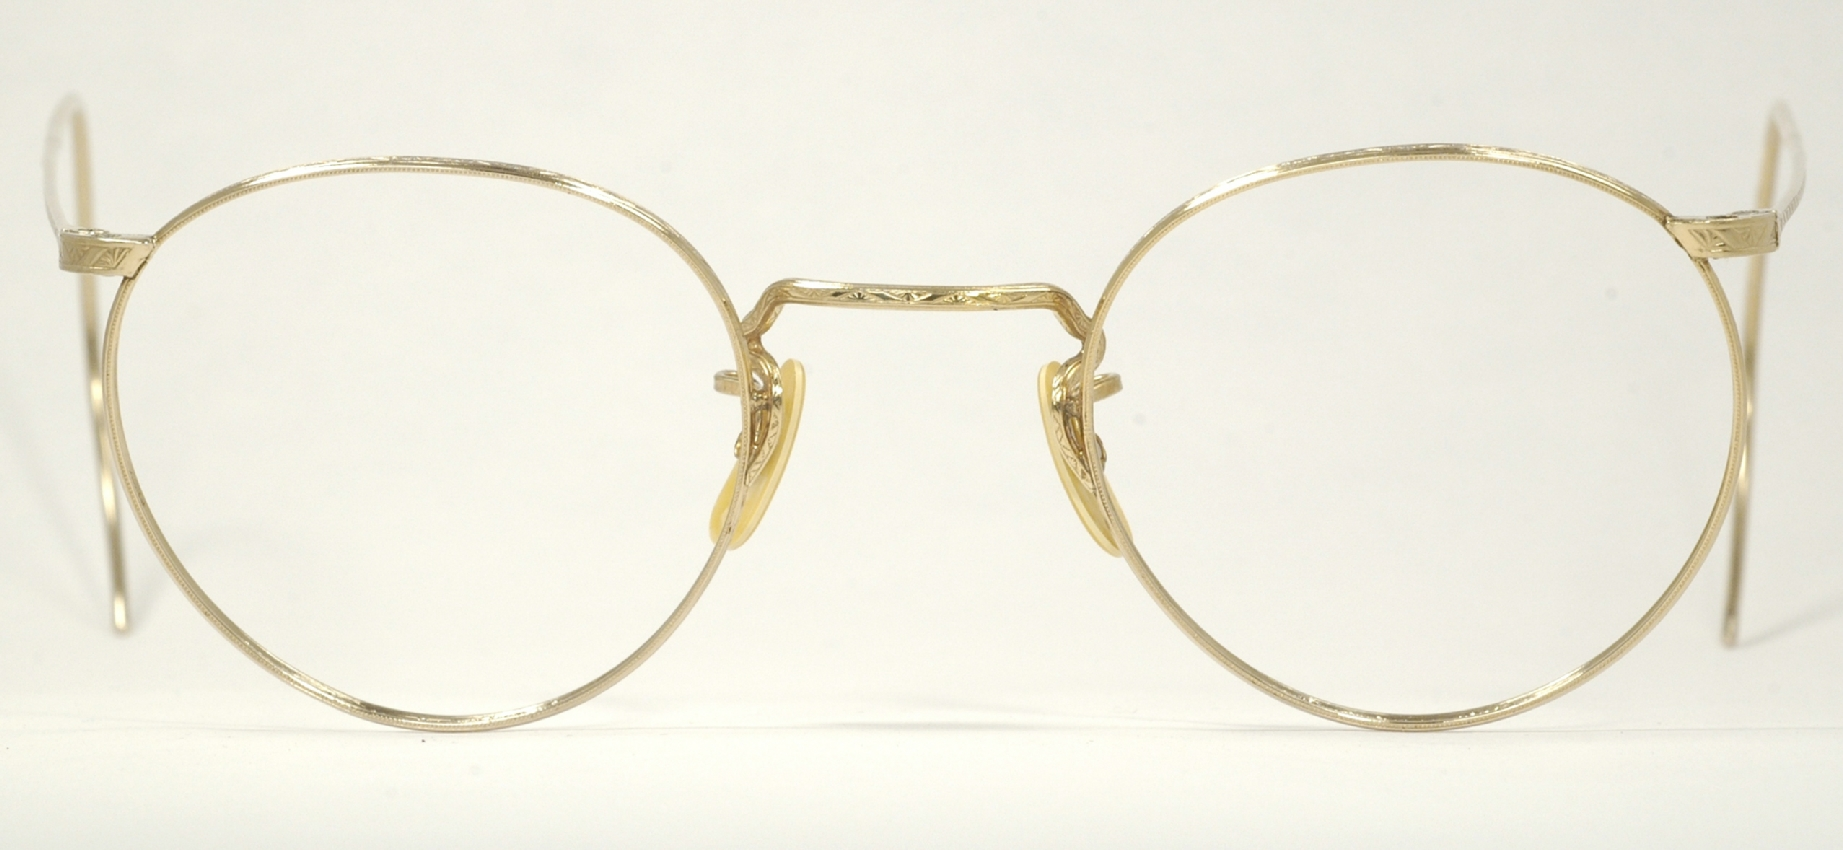 Gold Wire Glasses Frames : Optometrist Attic - AO GOLD WIRE RIM VINTAGE P3 EYEGLASSES